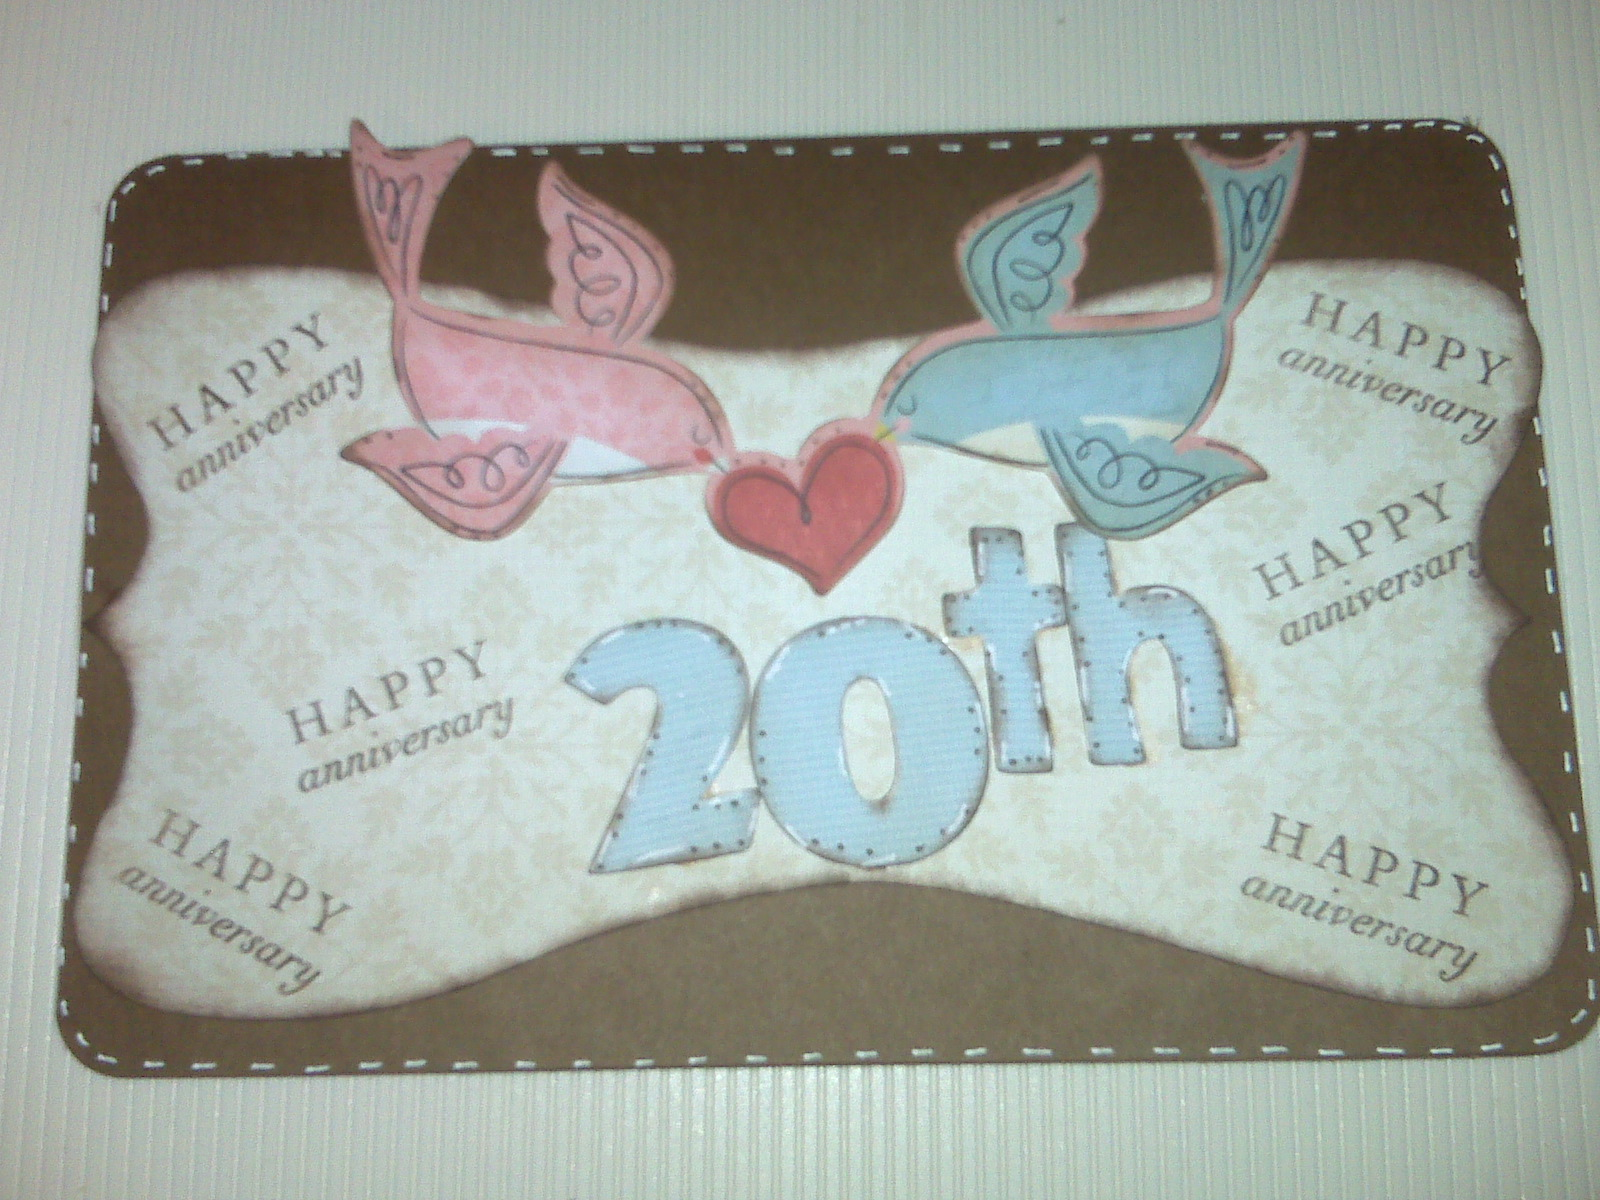 29th Wedding Anniversary Gift For Husband : Carolinabuggs life and creations: 20th Anniversary Card for my hubby!